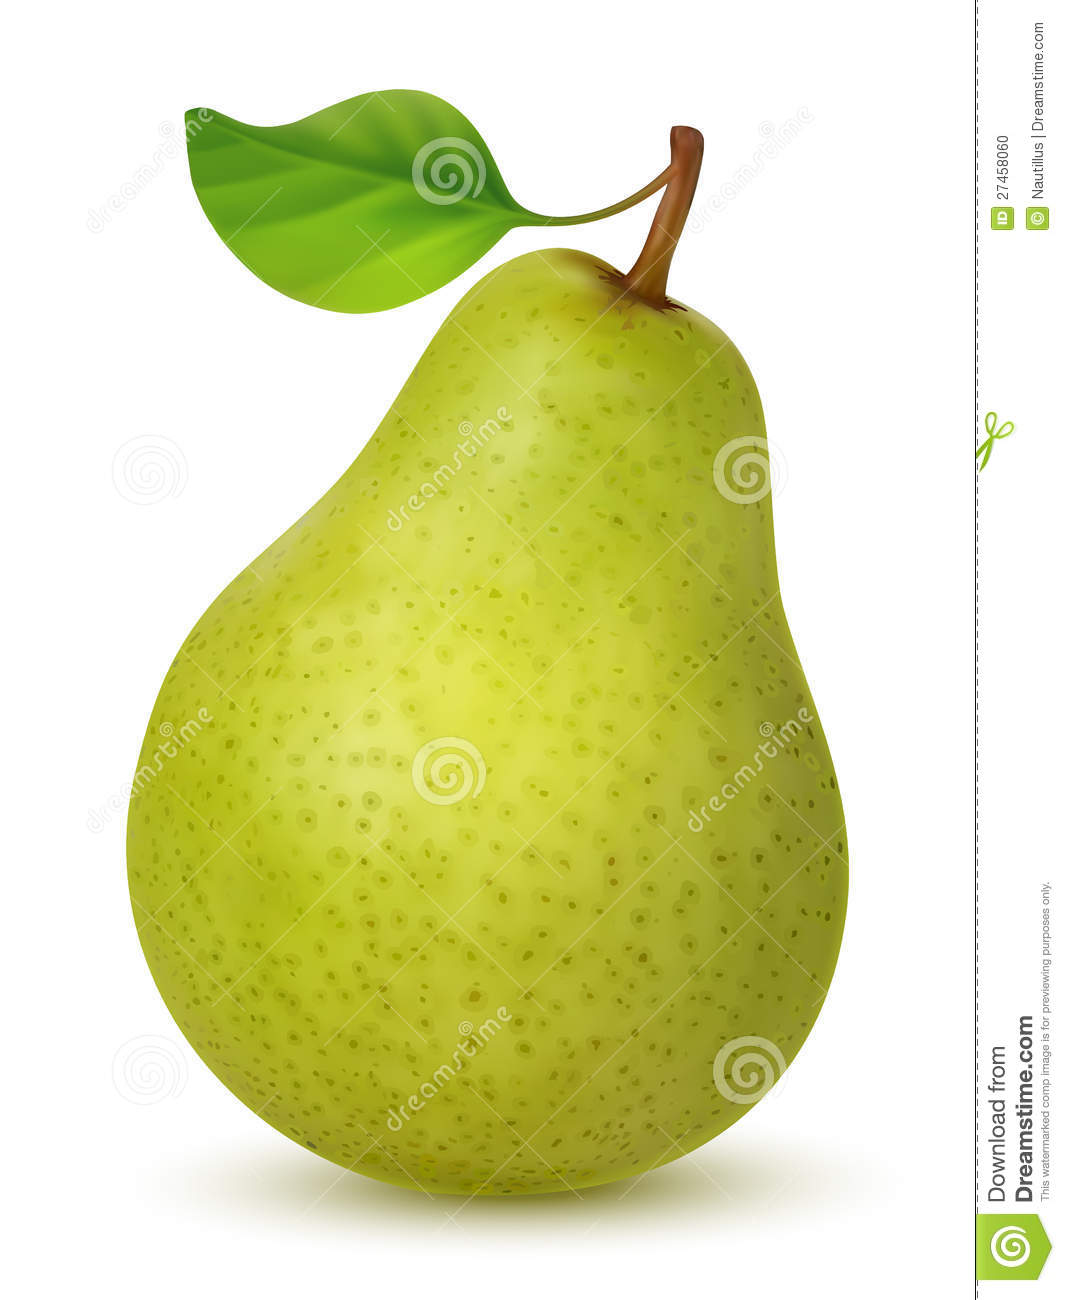 Big green pear on white background. Created using gradient meshes.